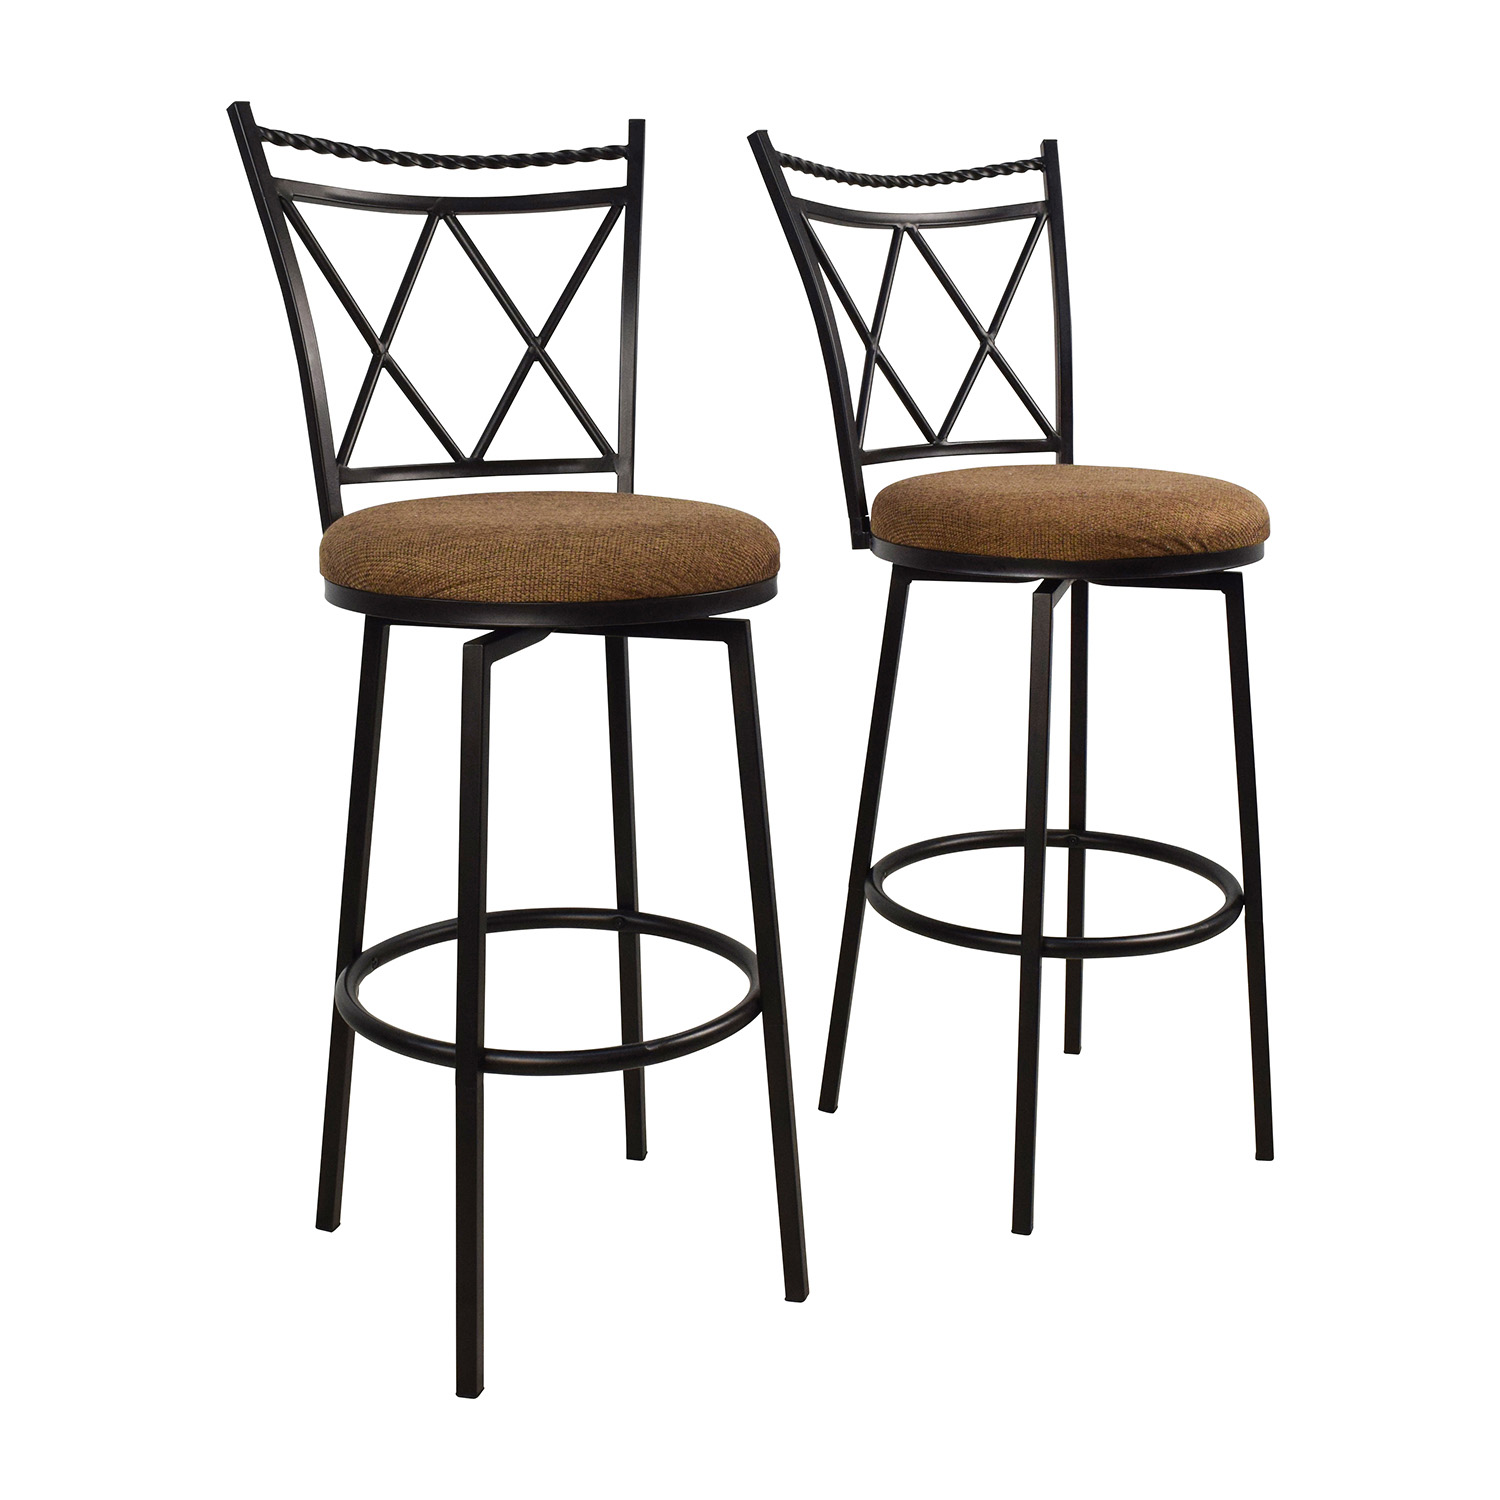 65 Off Upholstered Swivel Bar Stools Chairs